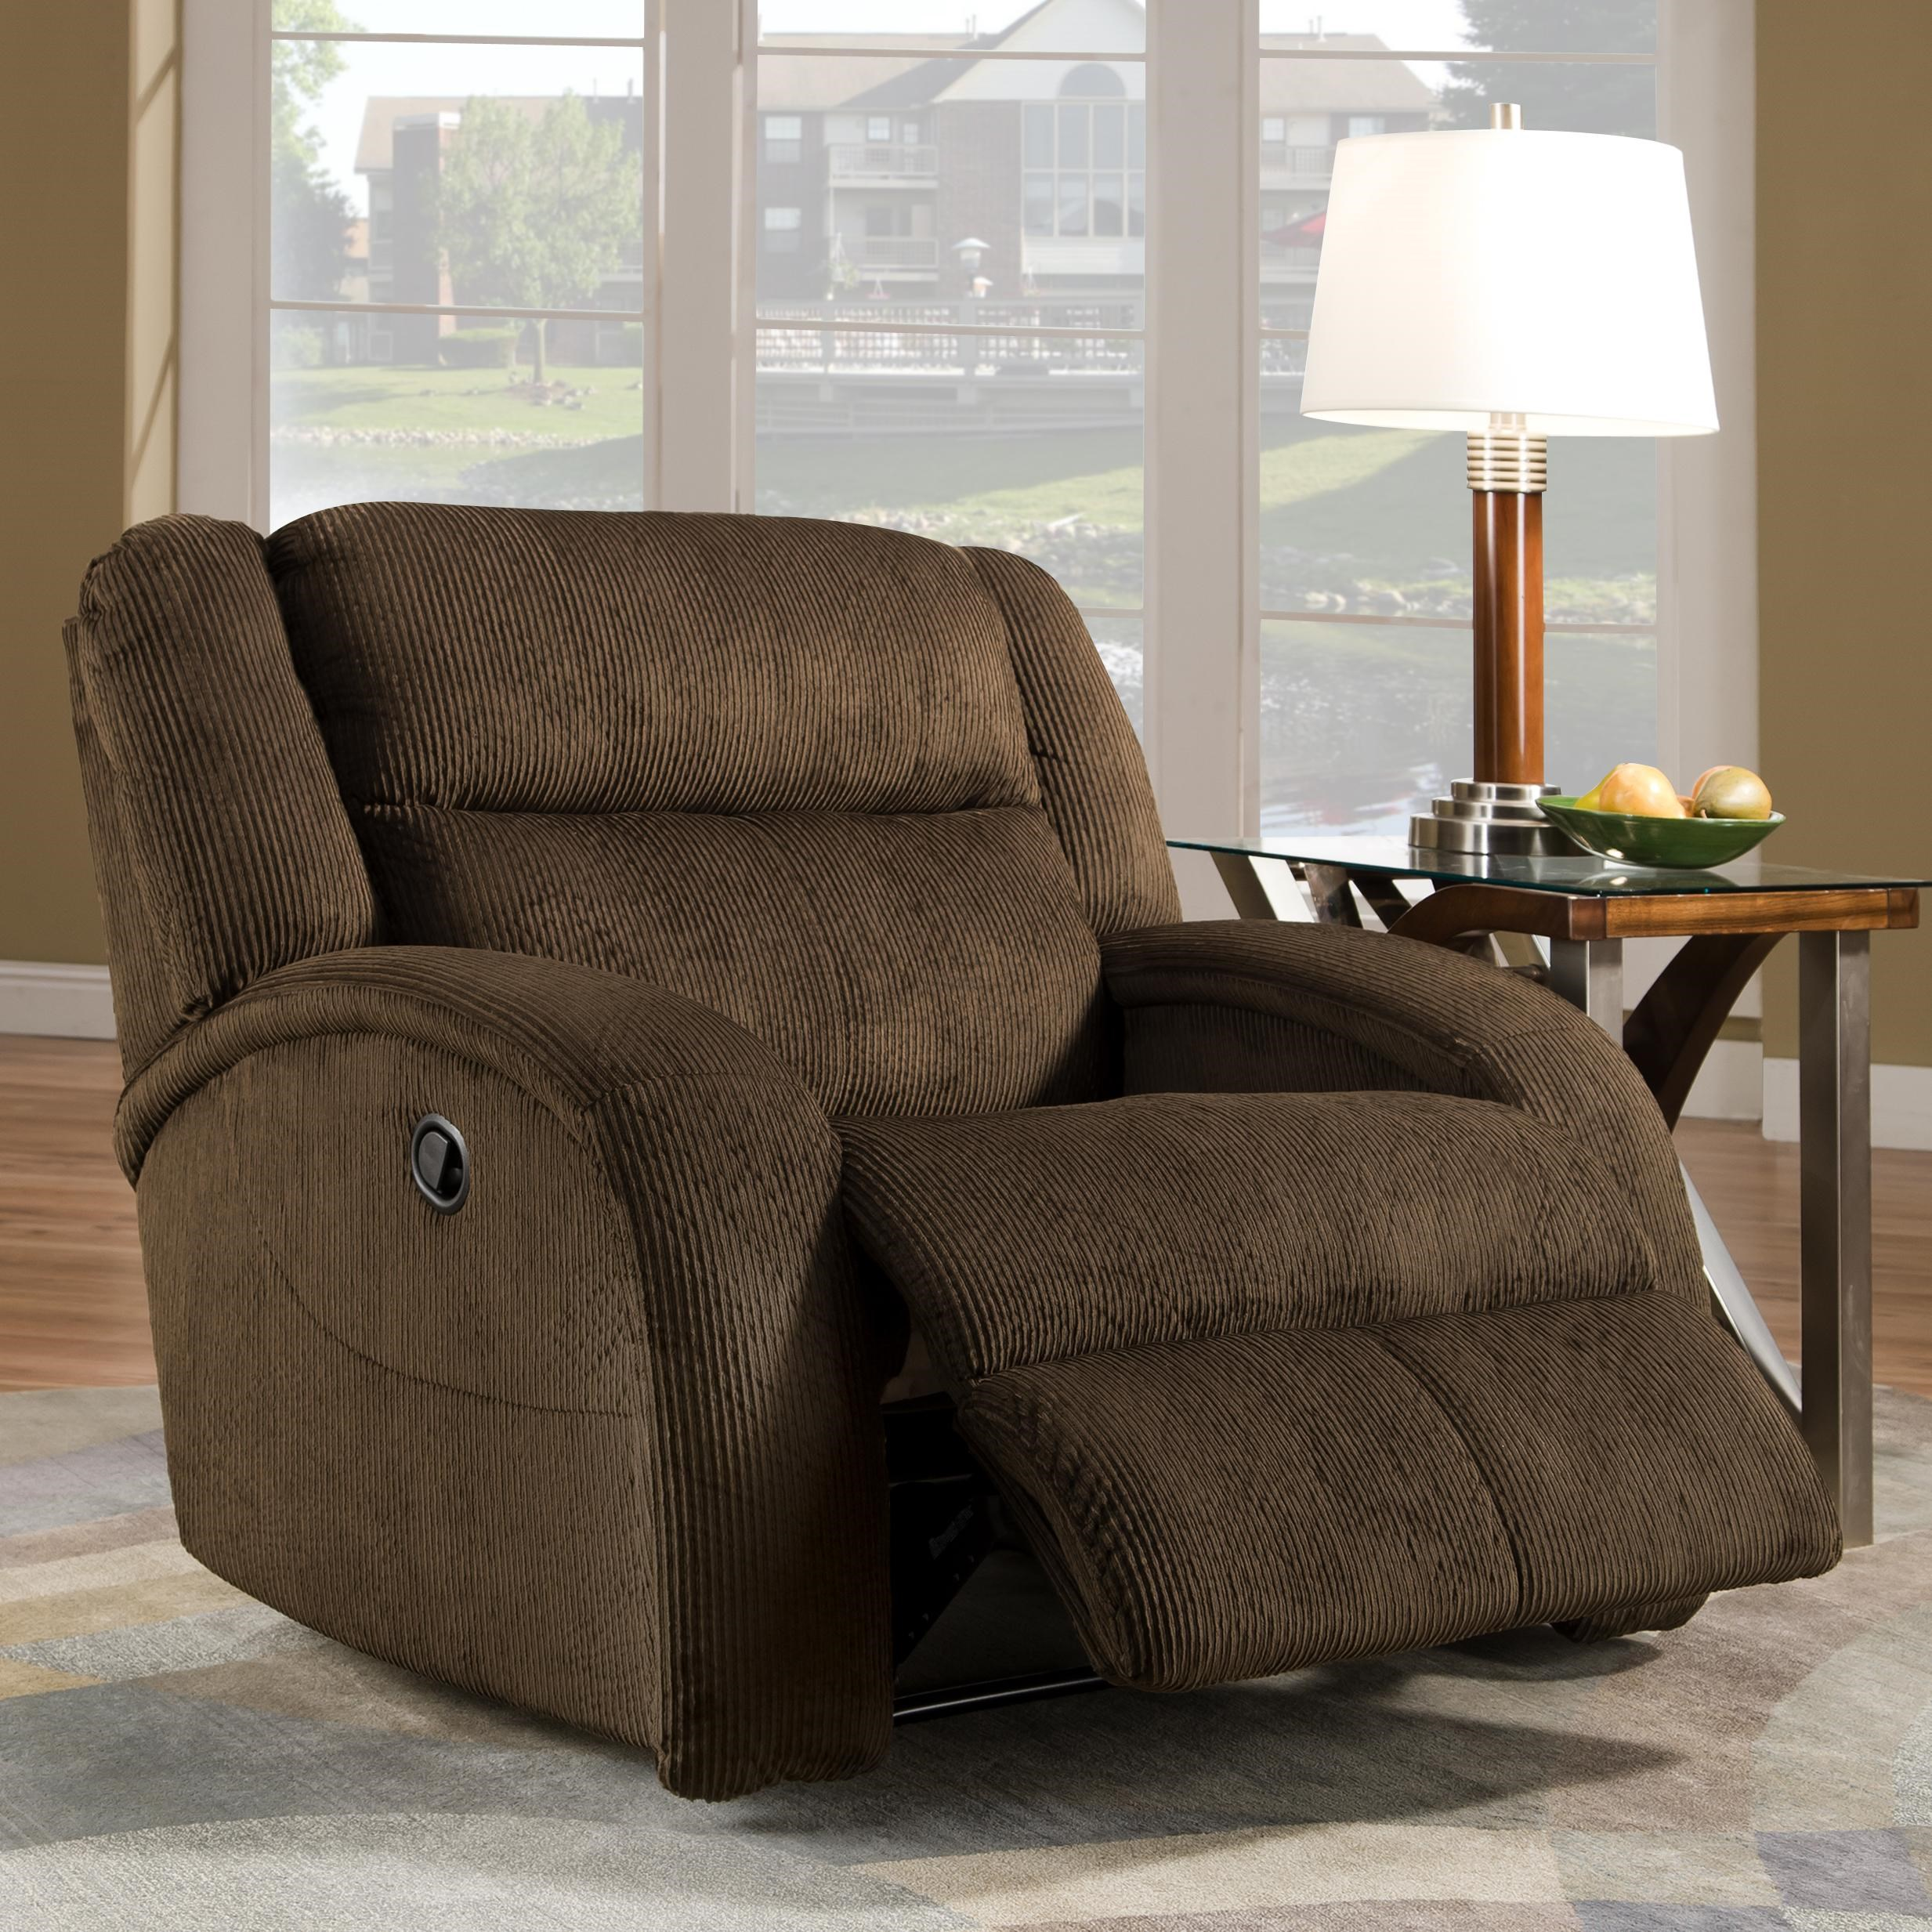 chair and a half recliner extra wide southern motion maverick power layflat chair and half recliner